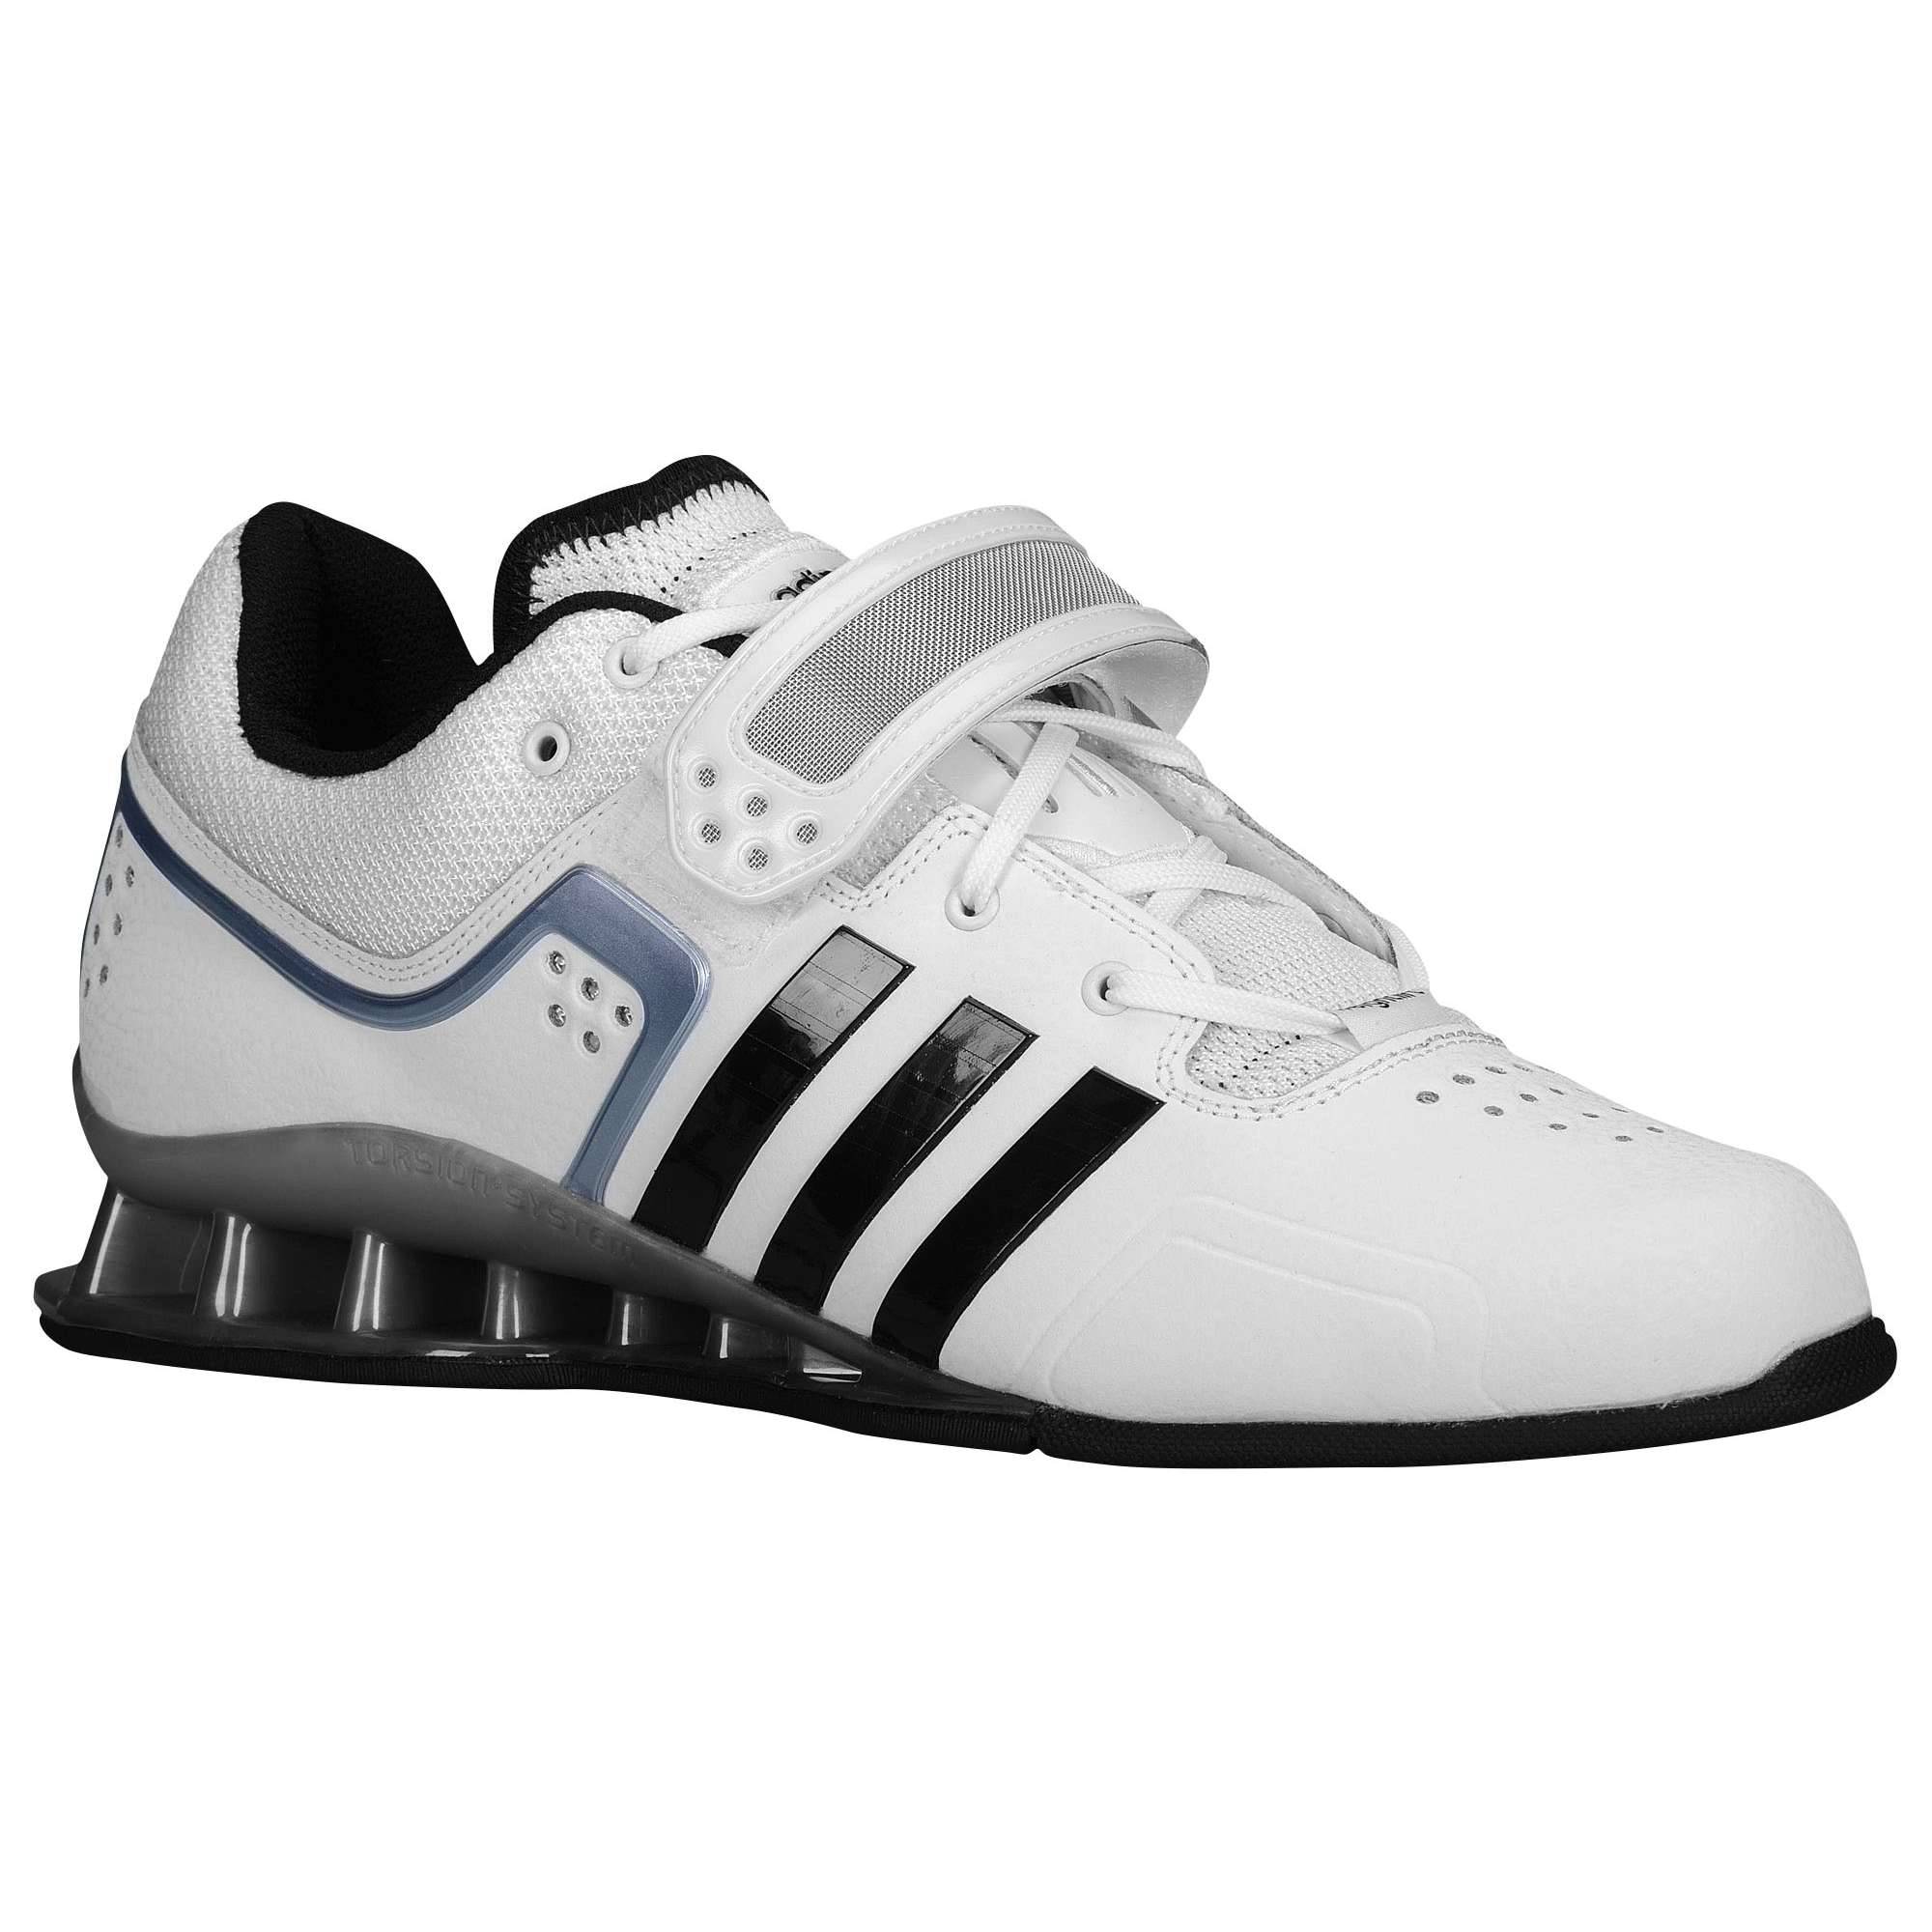 Olympic Adidas Shoes